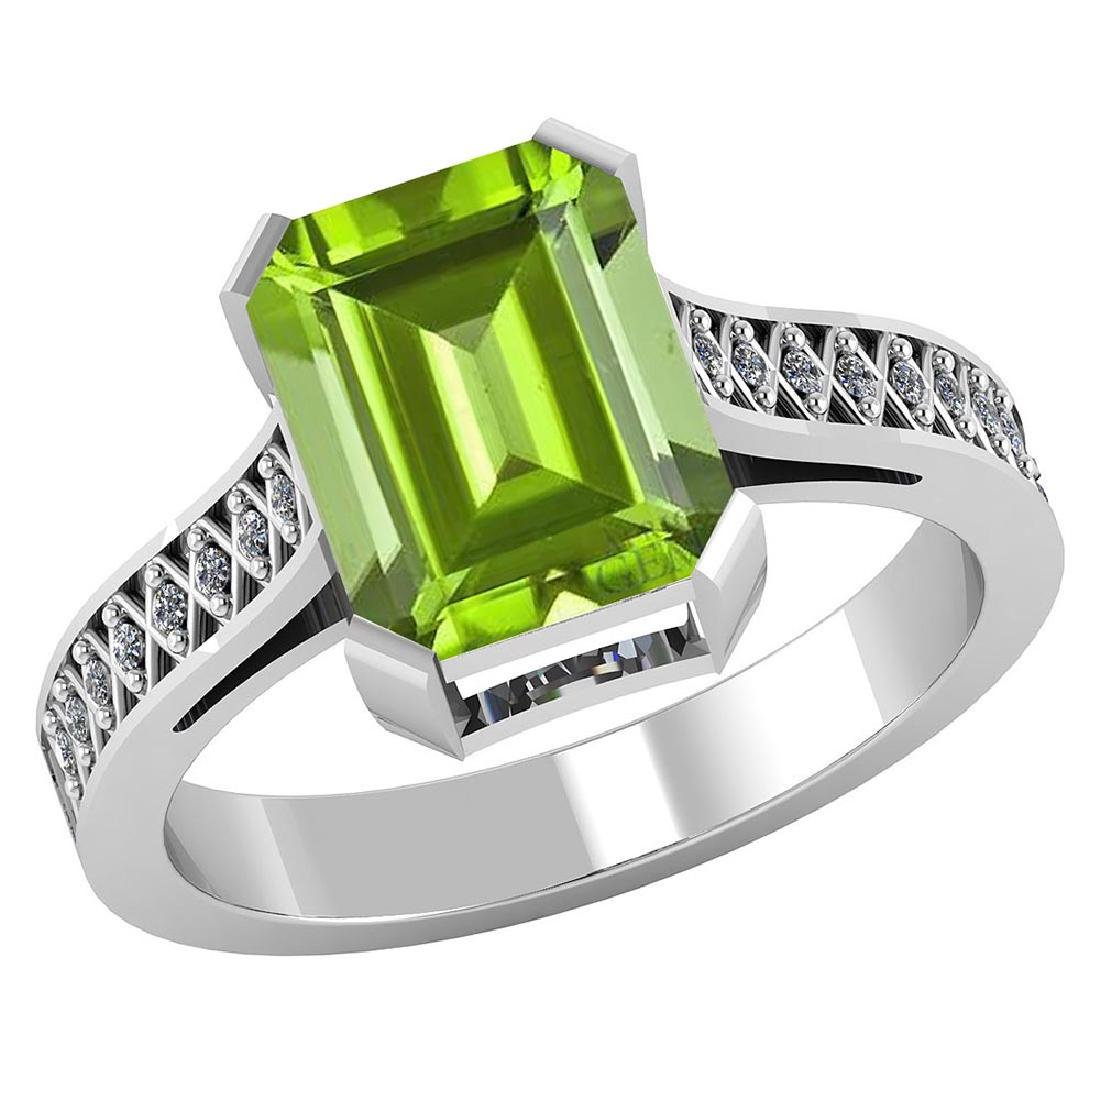 Certified 2.75 CTW Genuine Peridot And Diamond 14K Whit